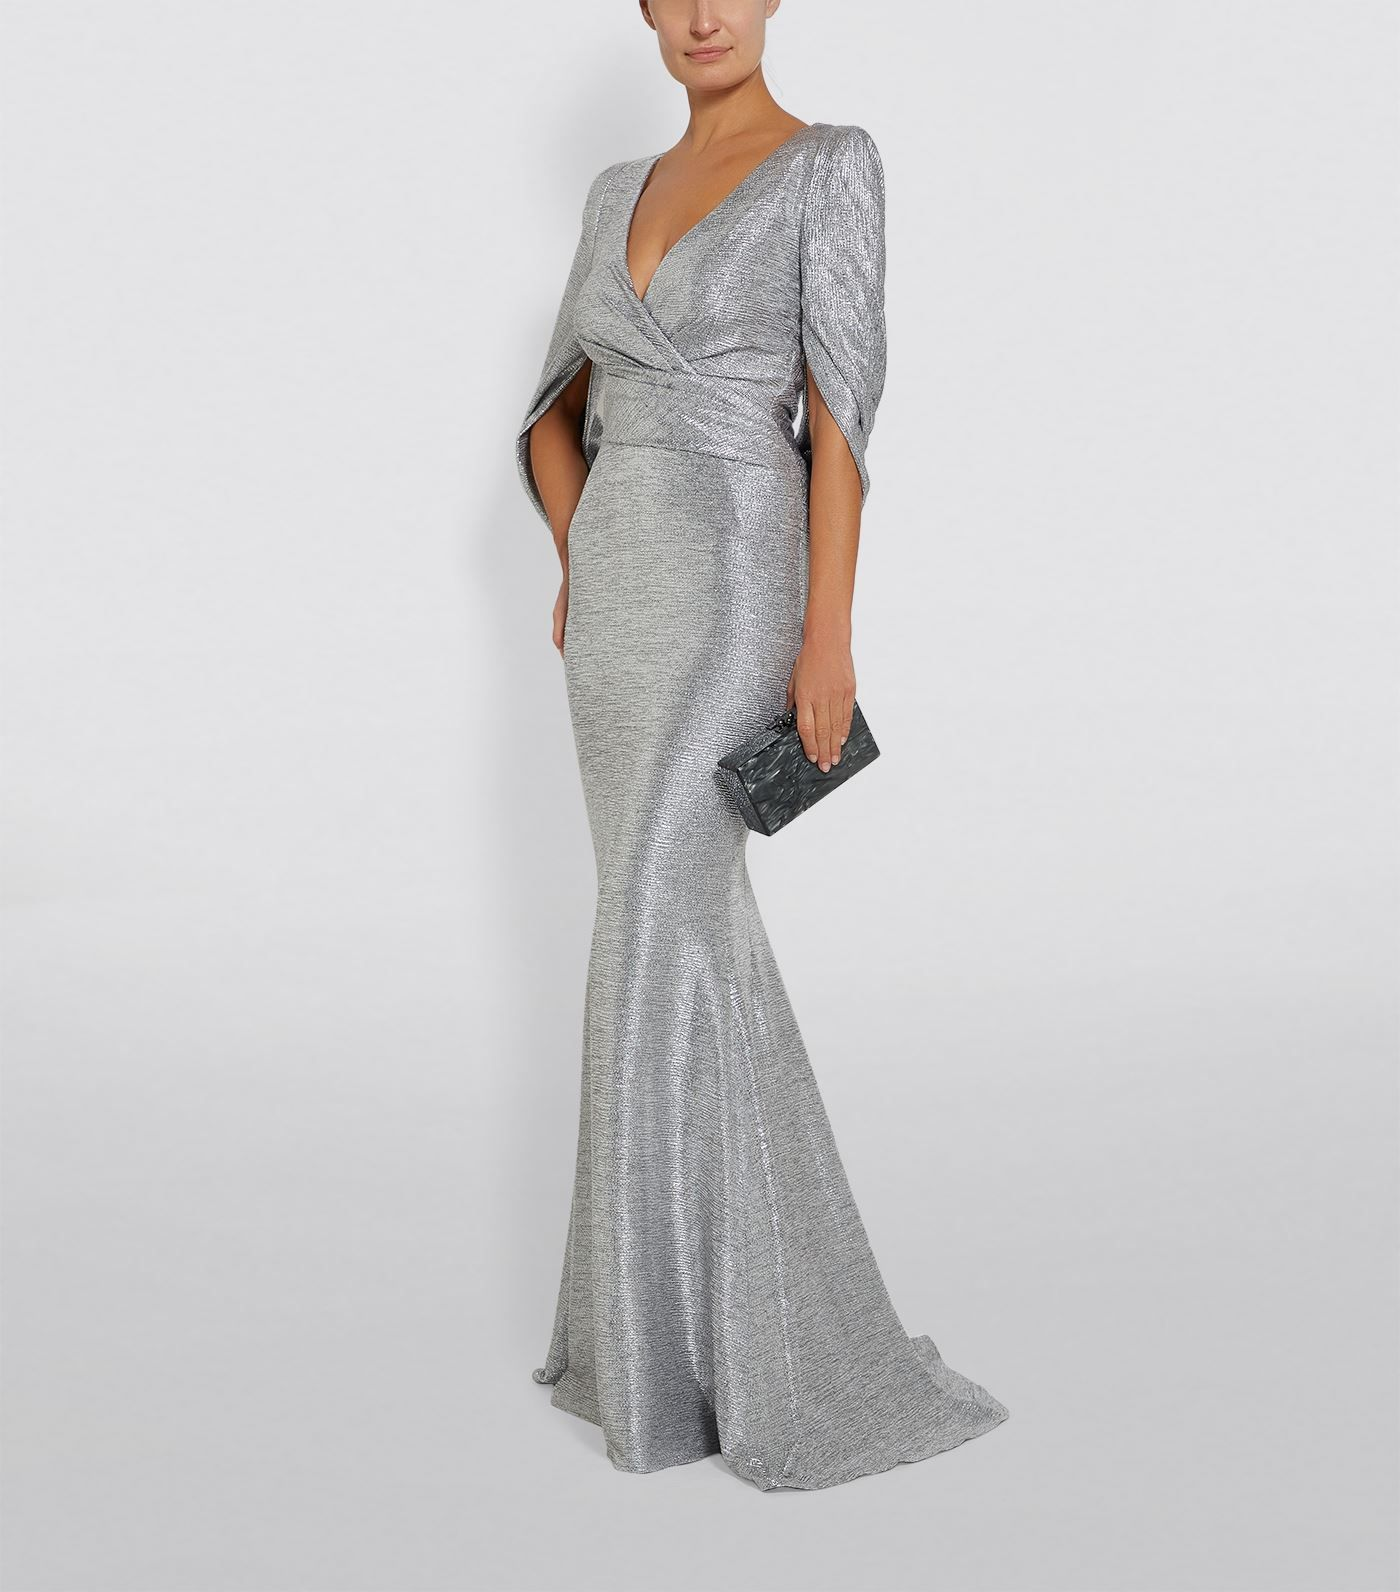 Talbot Runhof Draped Back V Neck Gown Harrods Com Ladies Gown Mother Of The Bride Dresses Gowns [ 1592 x 1400 Pixel ]